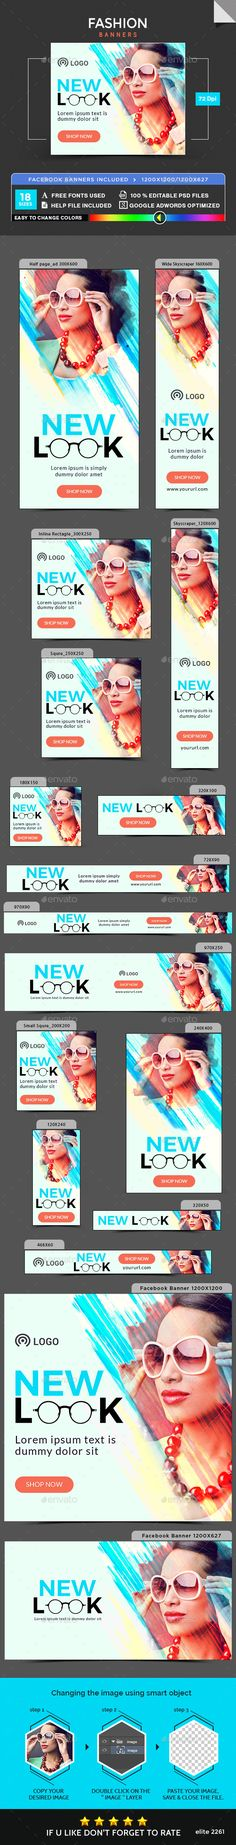 Fashion Banners Template PSD